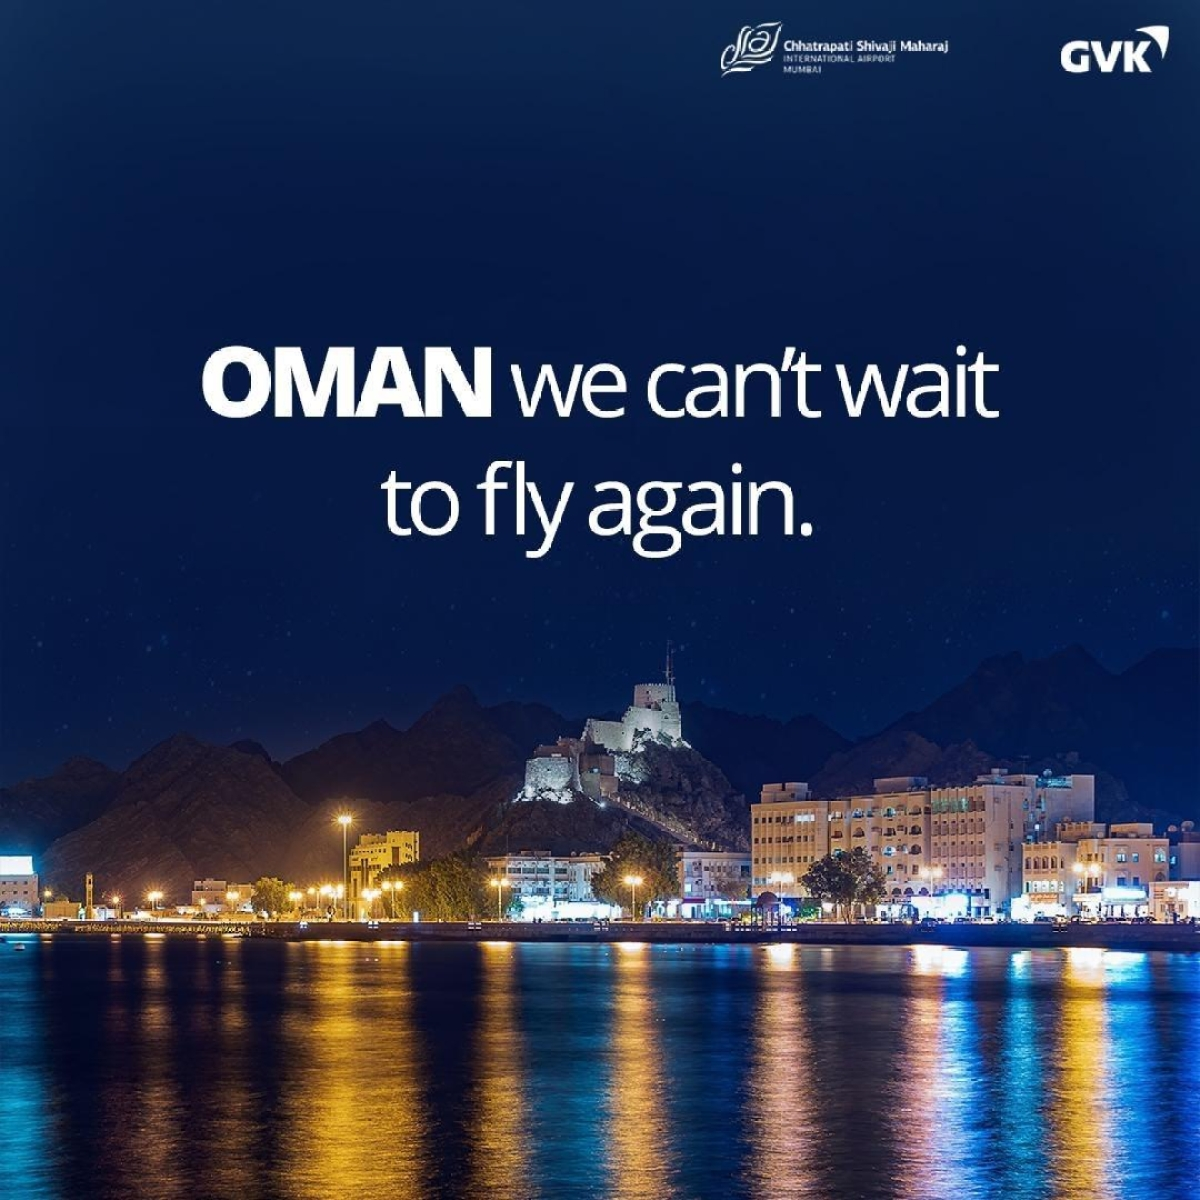 """Oman, we can't wait to fly again"": Mumbai Airport"